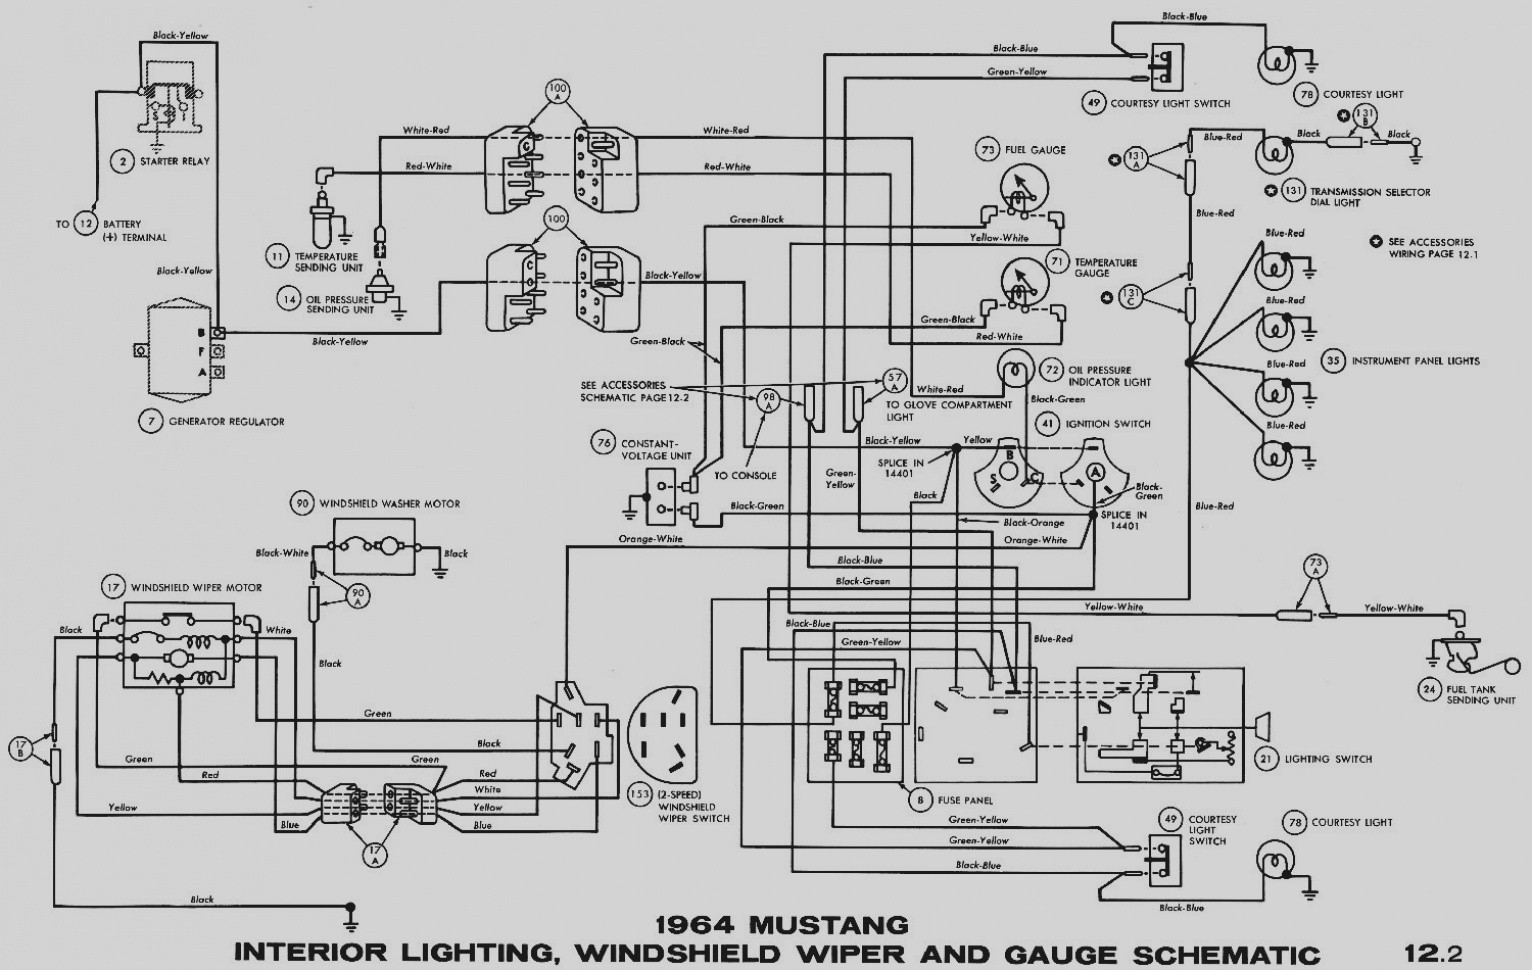 small resolution of 1964 ford falcon wiper switch wiring diagram wiring diagram dataford falcon fuse panel repair kit ford